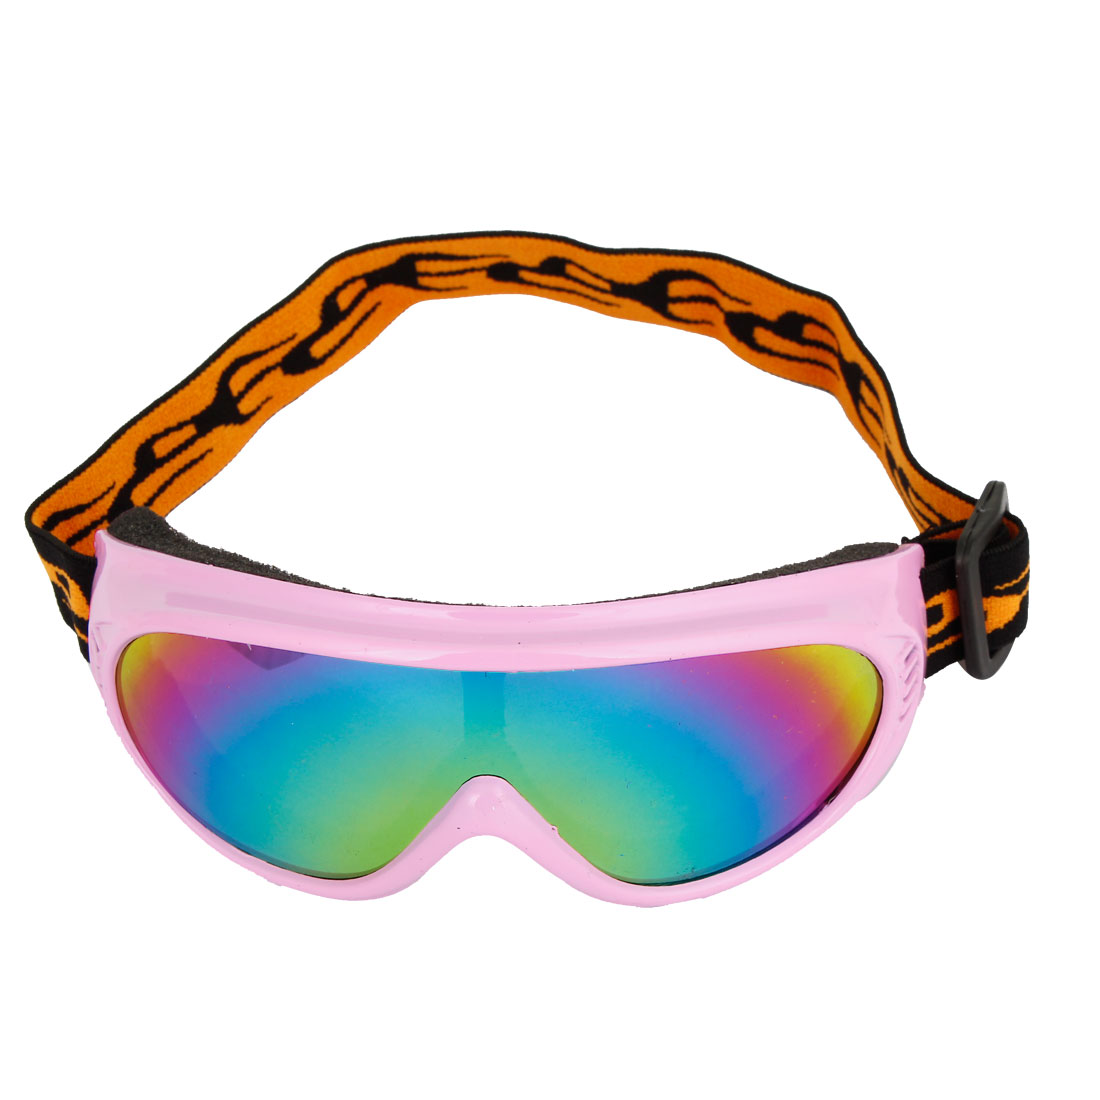 Unisex Pink Full Frame Colorful Lens Motorbike Snowboarding Eye Protector Goggles